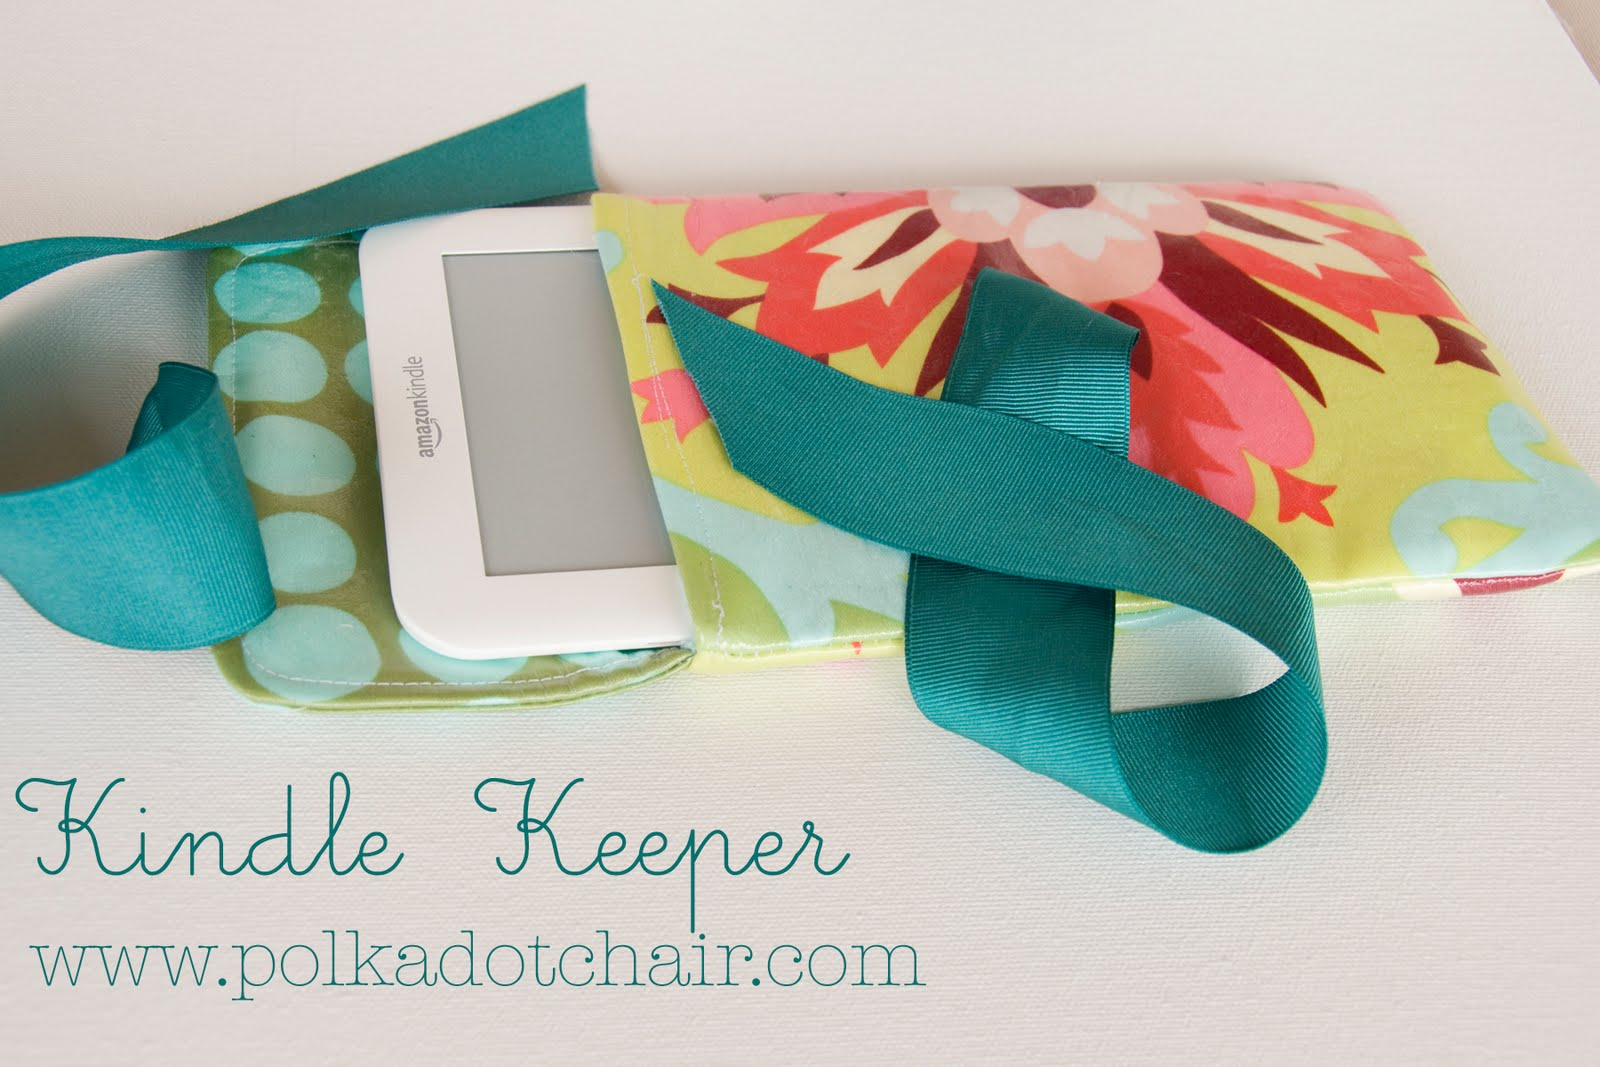 Make a cute tablet carrier!